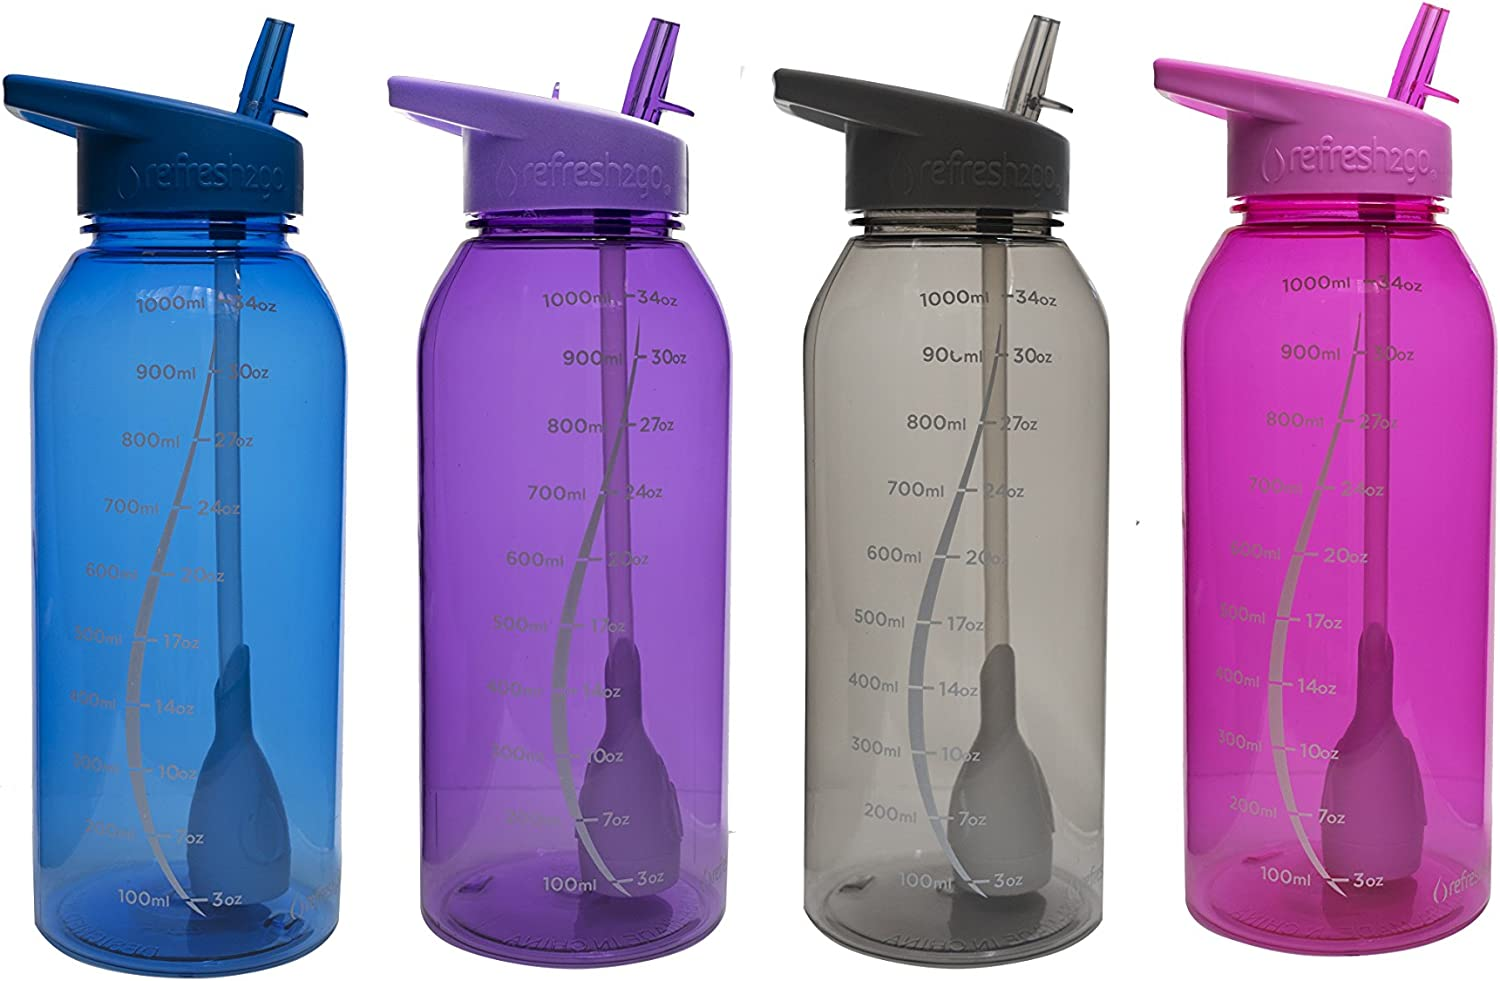 Filtered Water Bottle refresh2go Sleek BPA FREE Pink Purple Lid Straw Filter